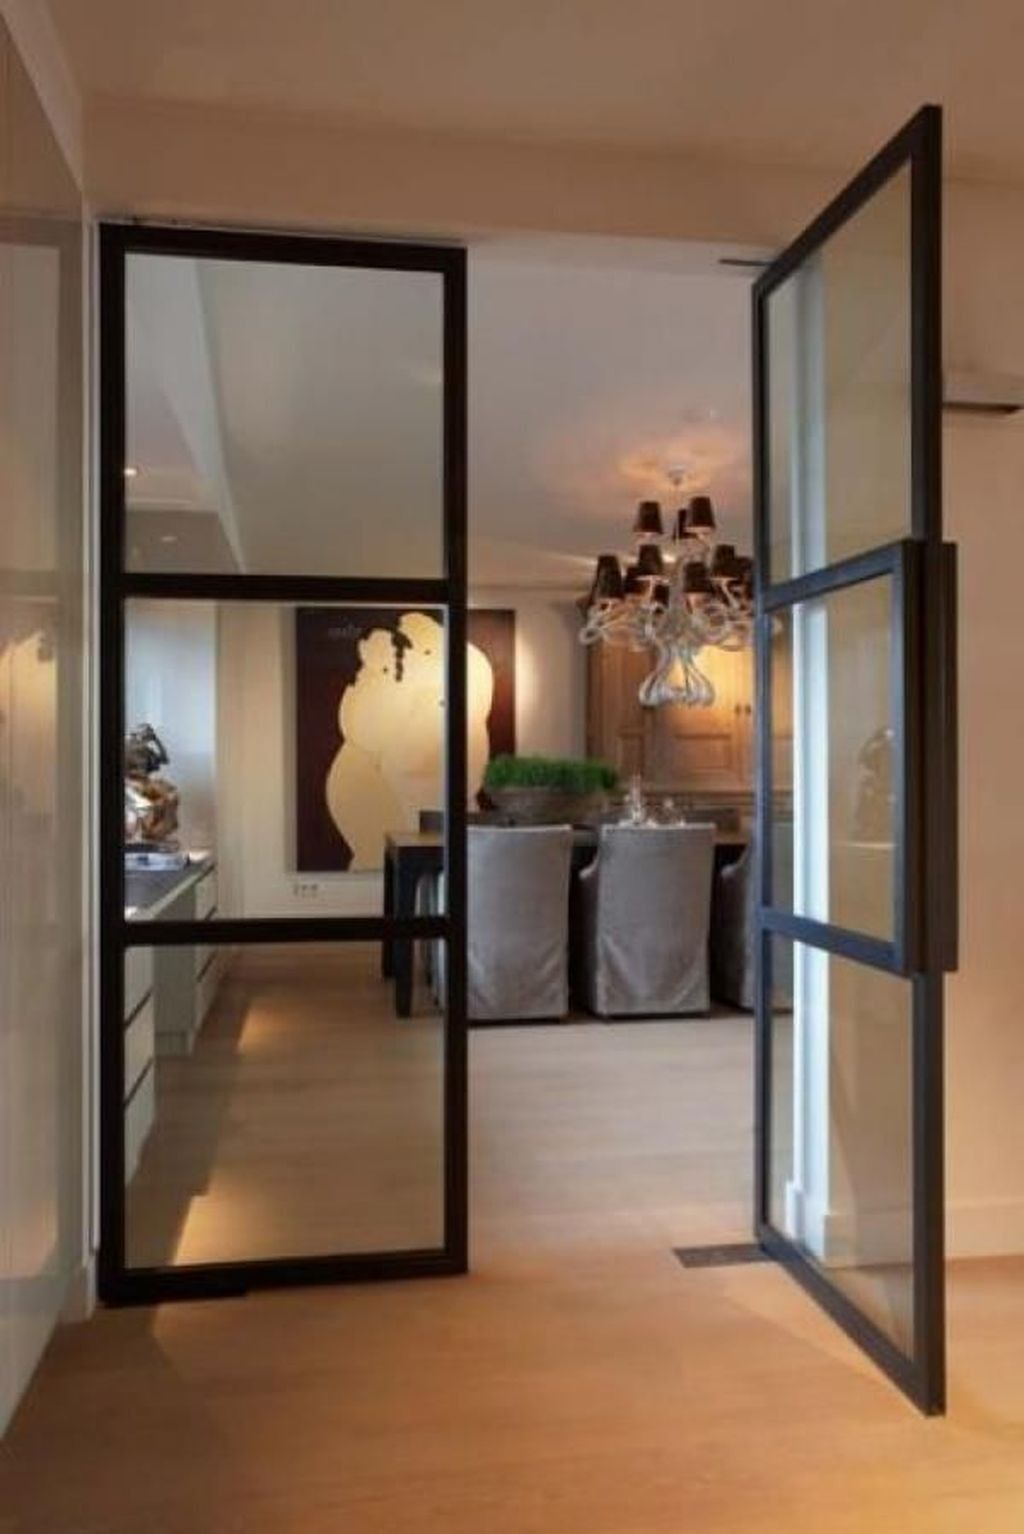 39 Best Modern Glass Door Designs Ideas For Your Glassdoor Doordesign Homeideas Glass Doors Interior Internal Glass Doors Doors Interior